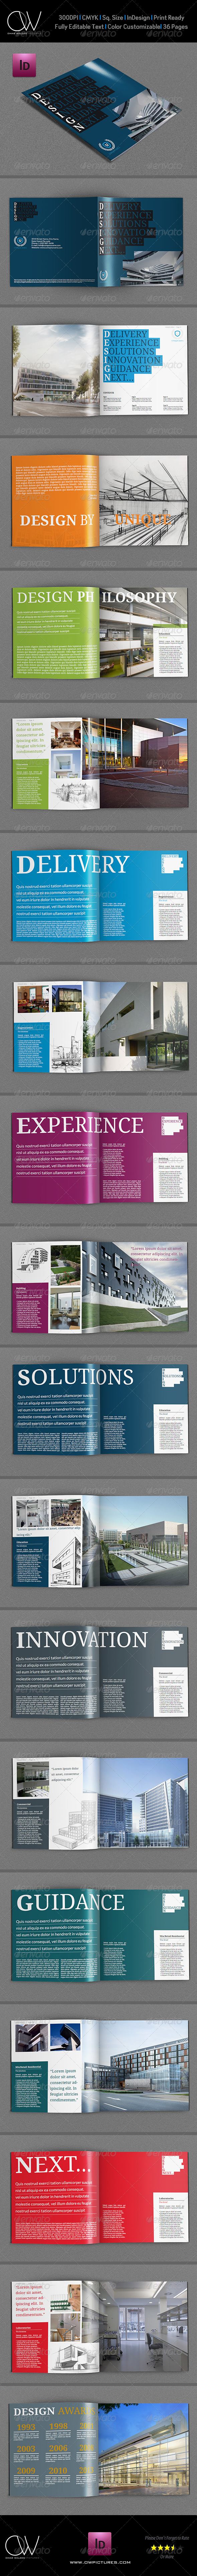 GraphicRiver Design Company Brochure Template 36 Pages 5827930